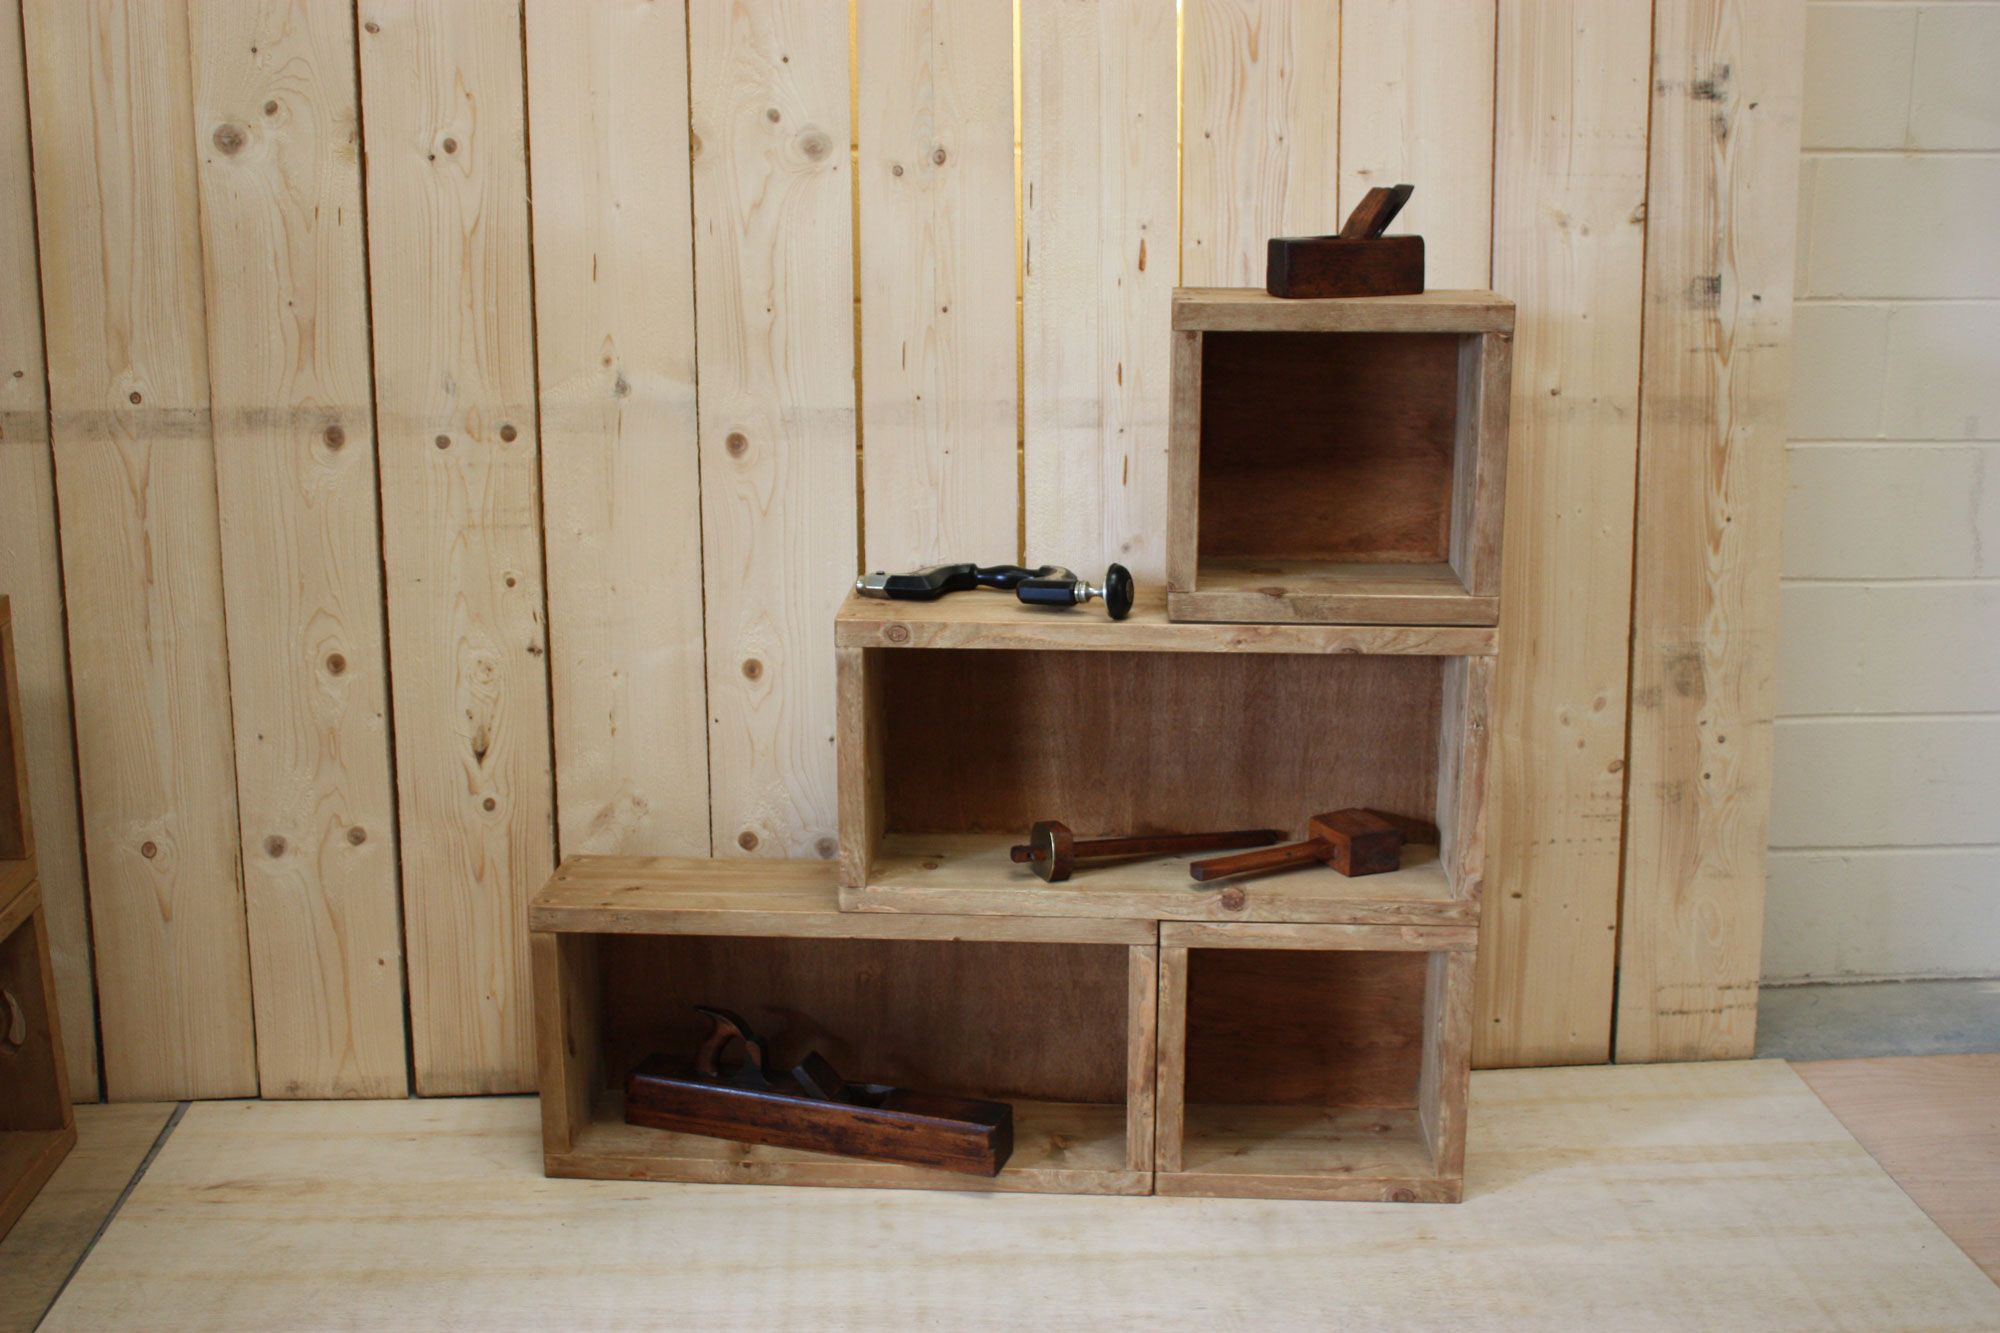 Stackable Wooden Bo Hand Made From Reclaimed Timber The Two Diffe Size Can Be Stacked In Many Ways To Provide